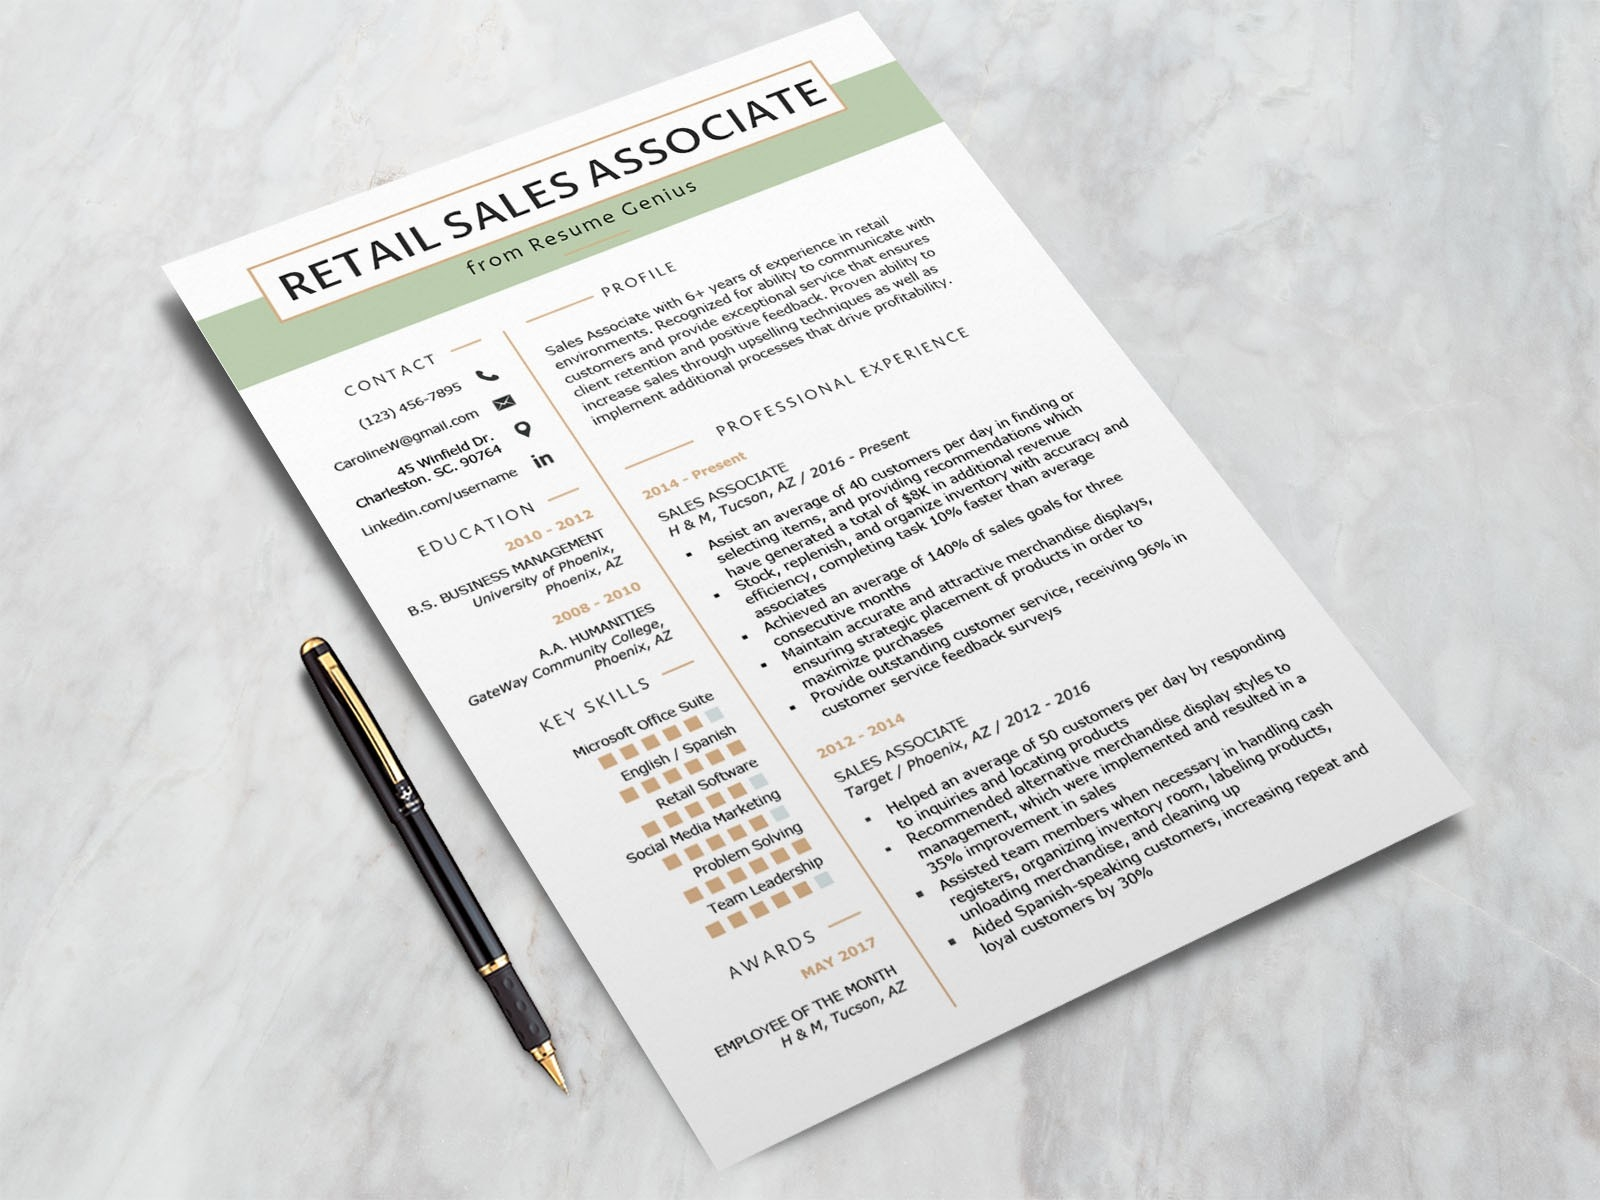 Free Retail Sales Associate Resume Template By Andy Khan On Dribbble